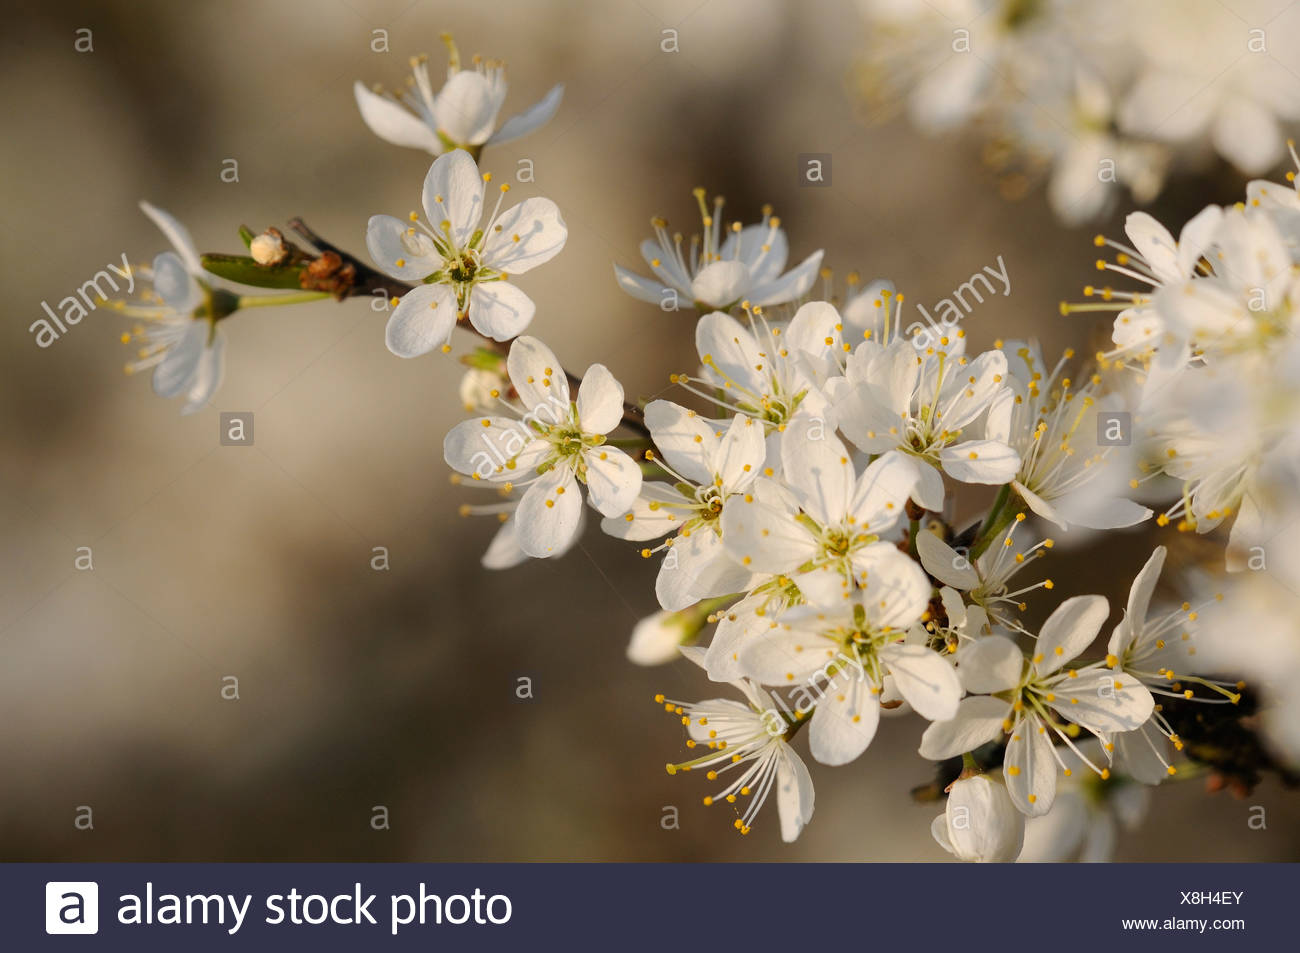 Blossoming Blackthorn or Sloe (Prunus spinosa) - Stock Image